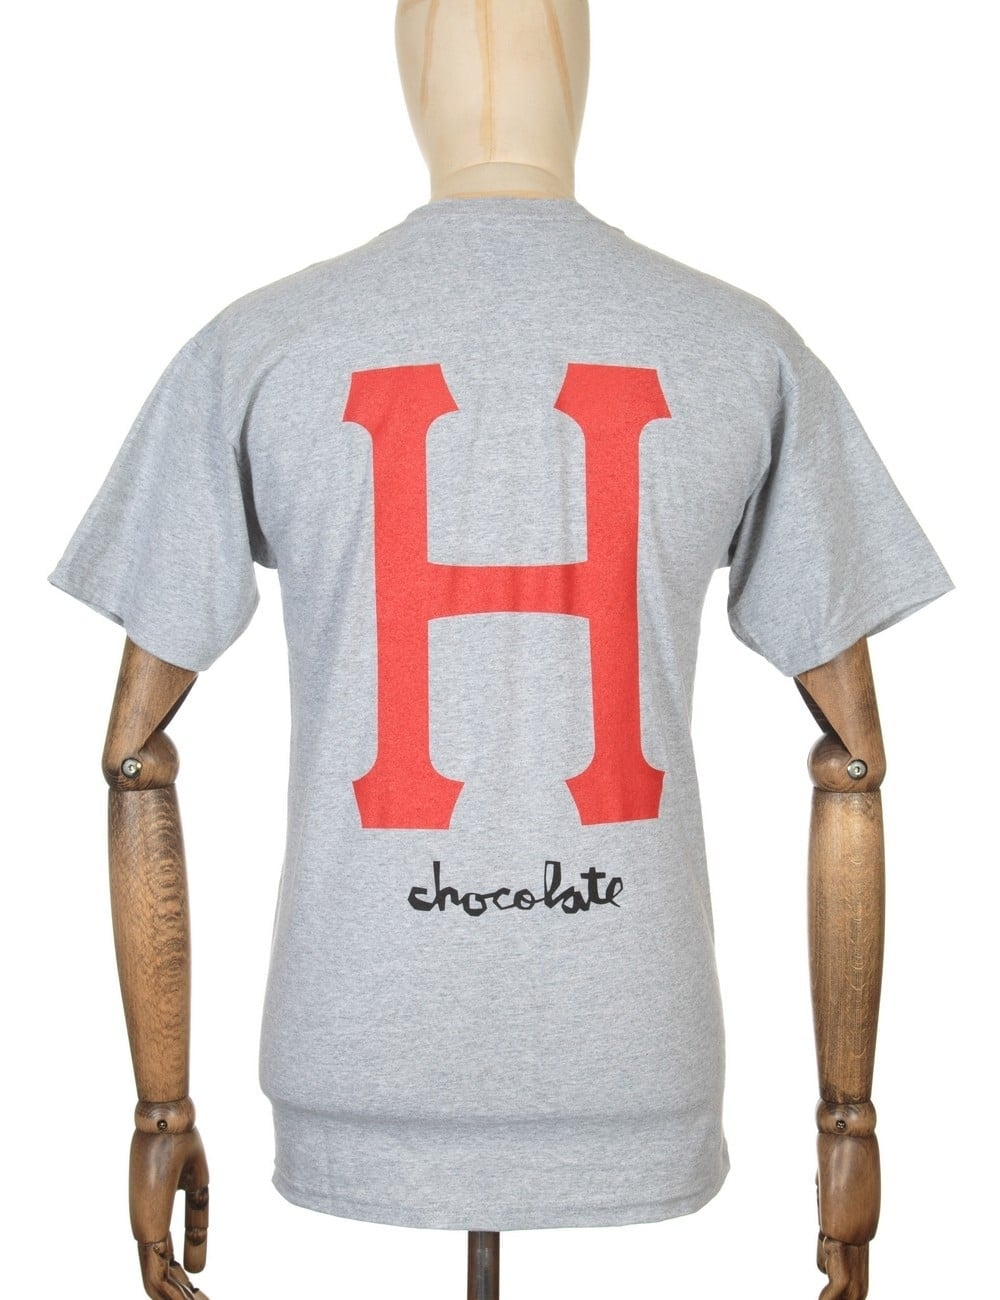 0abaf236d0160 Huf x Chocolate Classic H T-shirt - Grey Heather - T Shirts from Fat ...